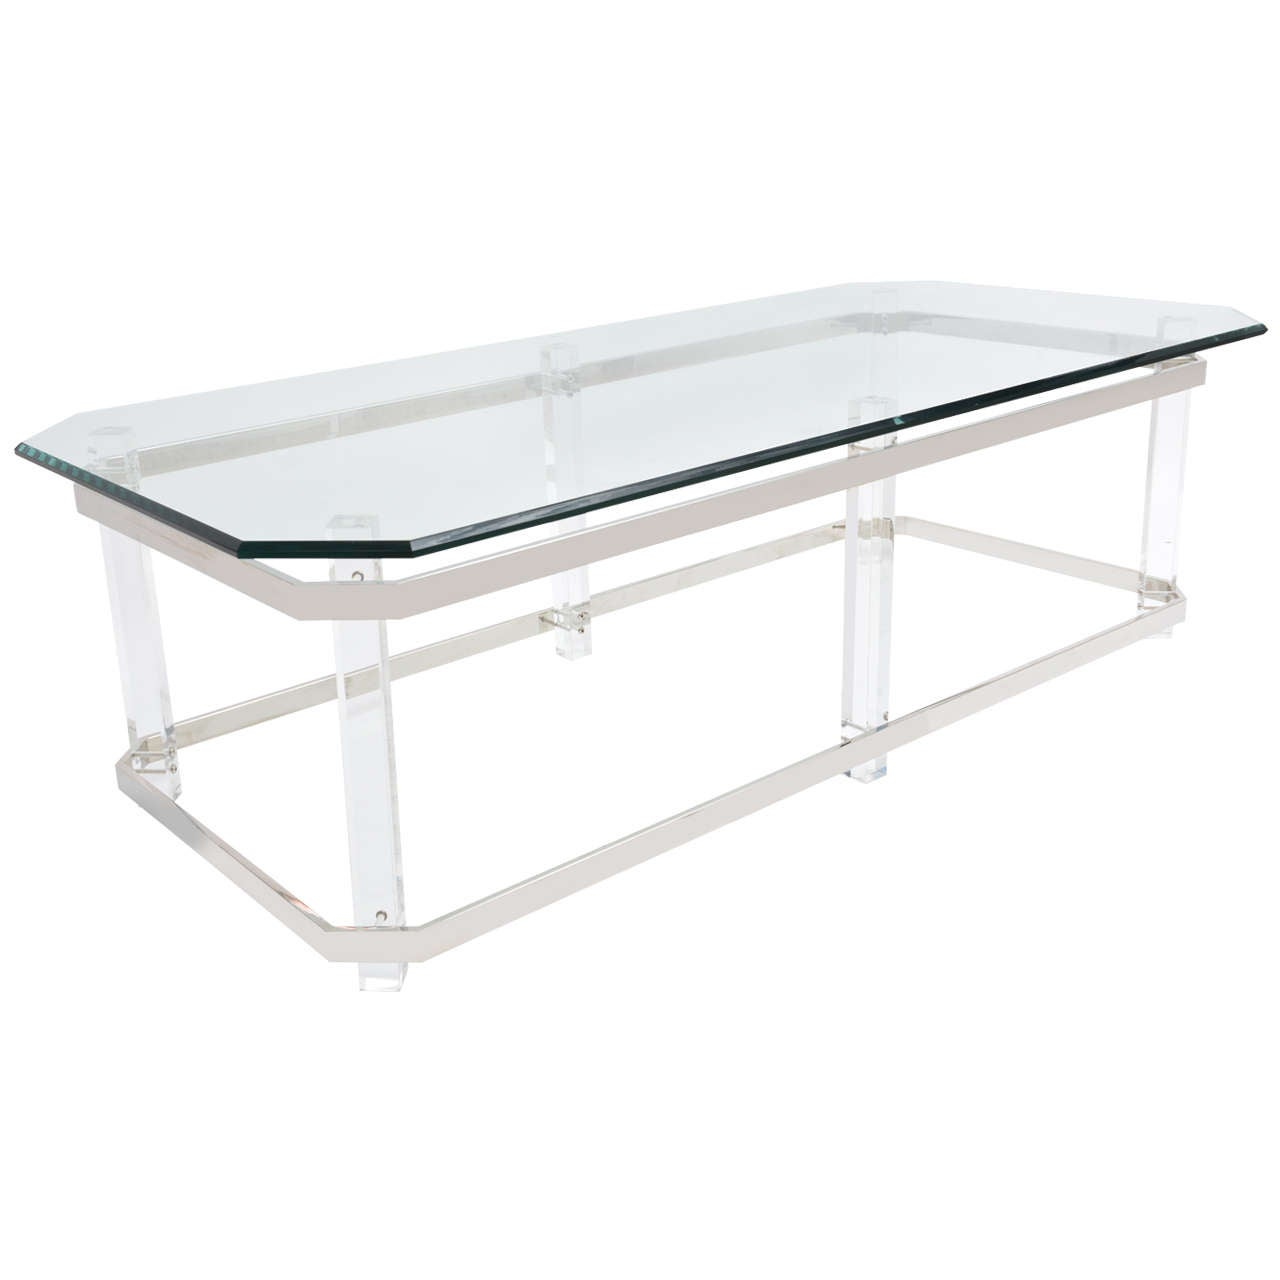 Acrylic Chrome Coffee Table: Rectangular Lucite And Chrome Cocktail Table, Charles